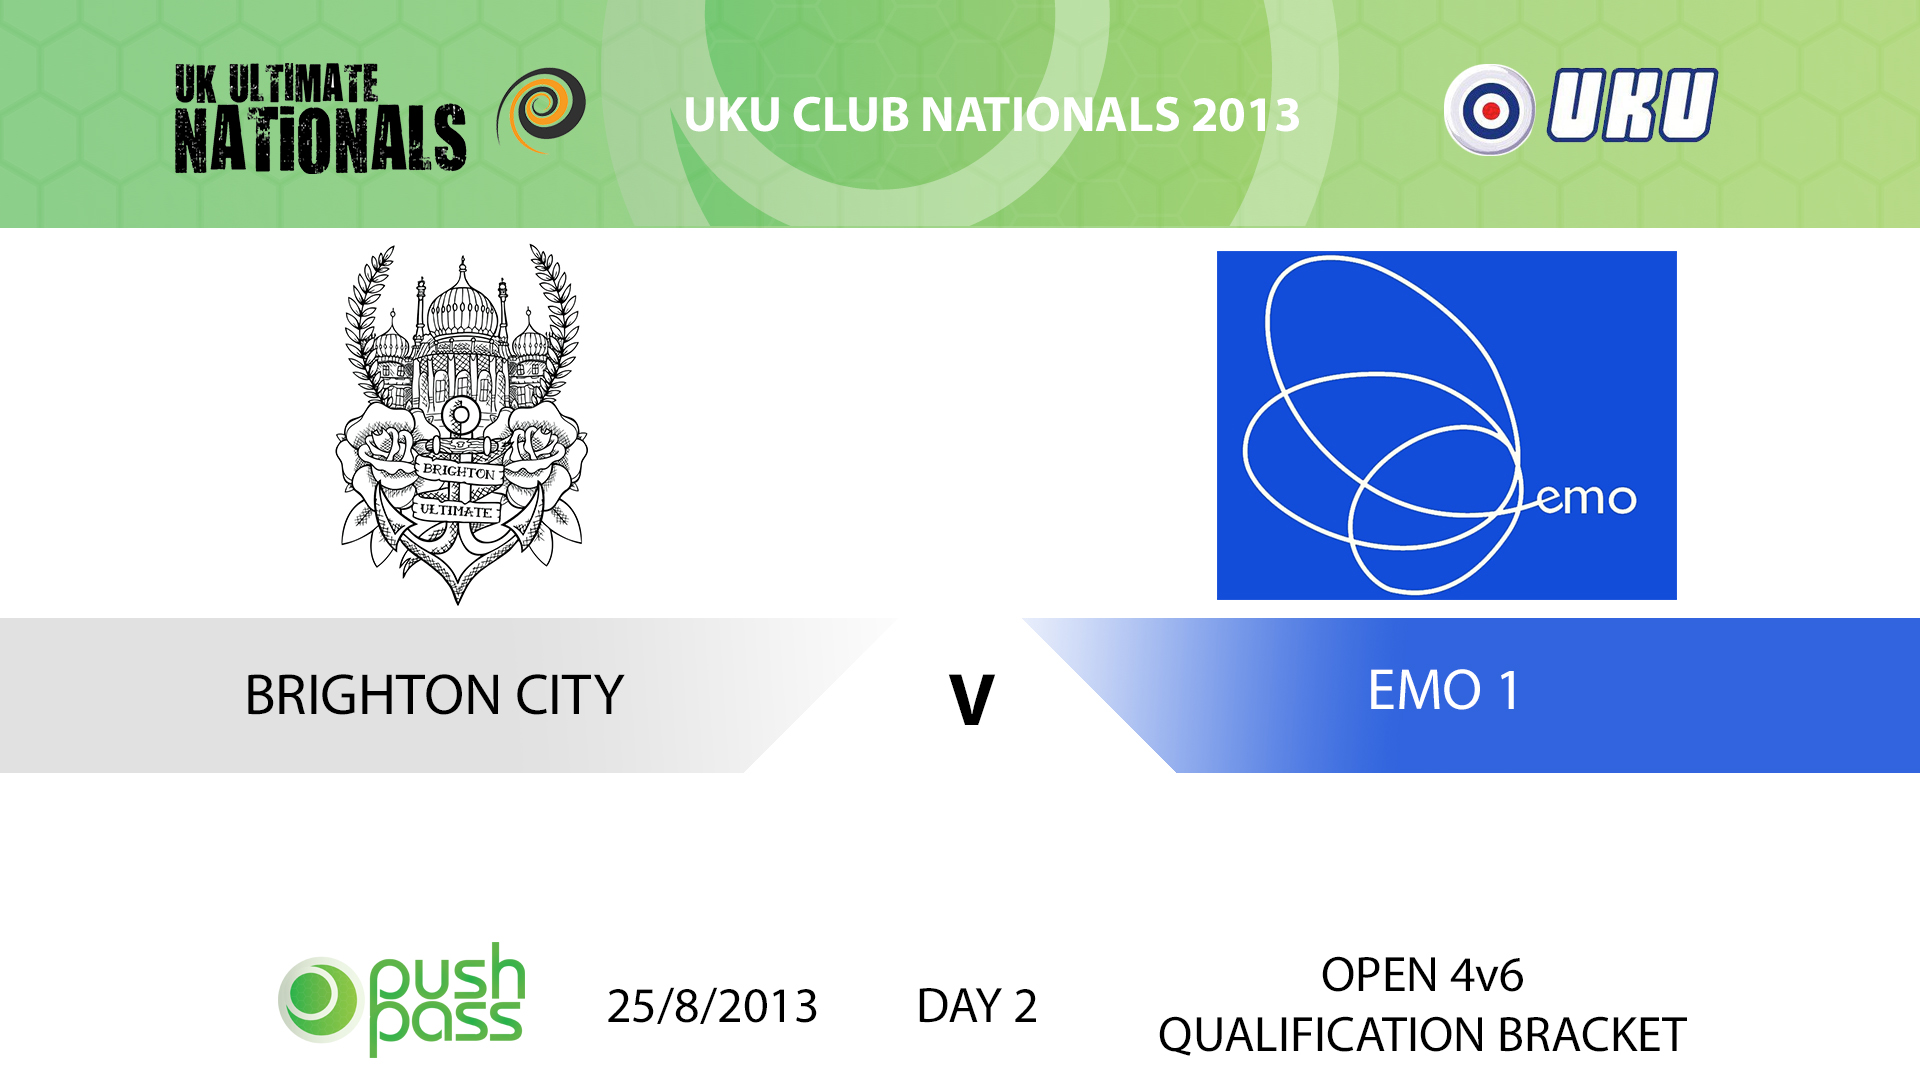 UKU Club Nationals 2013: Brighton City v EMO 1